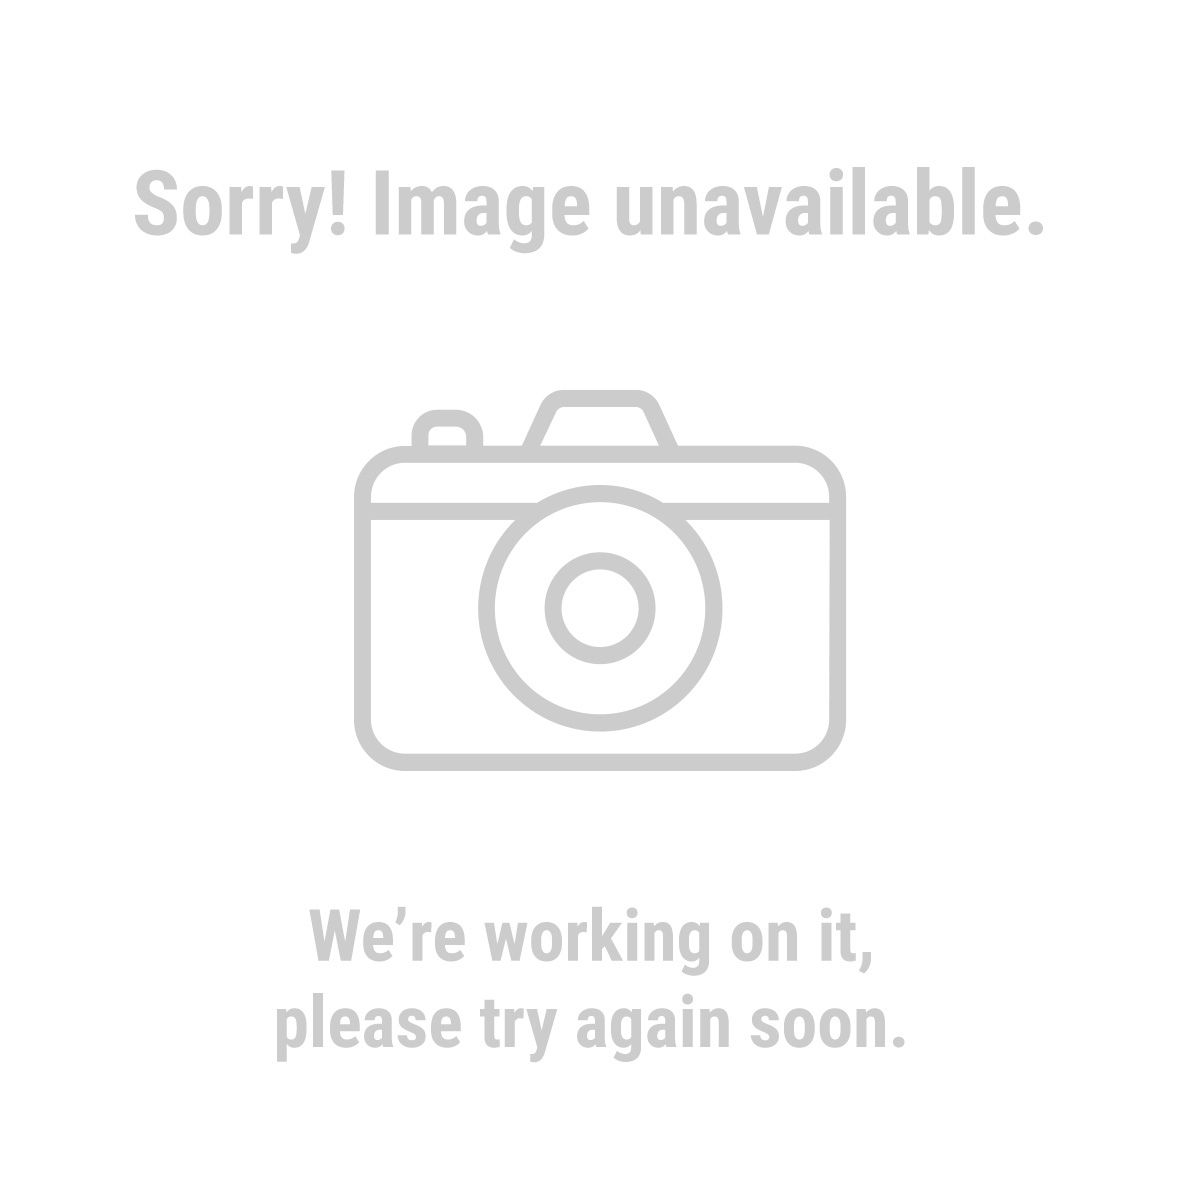 Chicago Electric 98066 8mm x 5m Heat Shrink Tubing